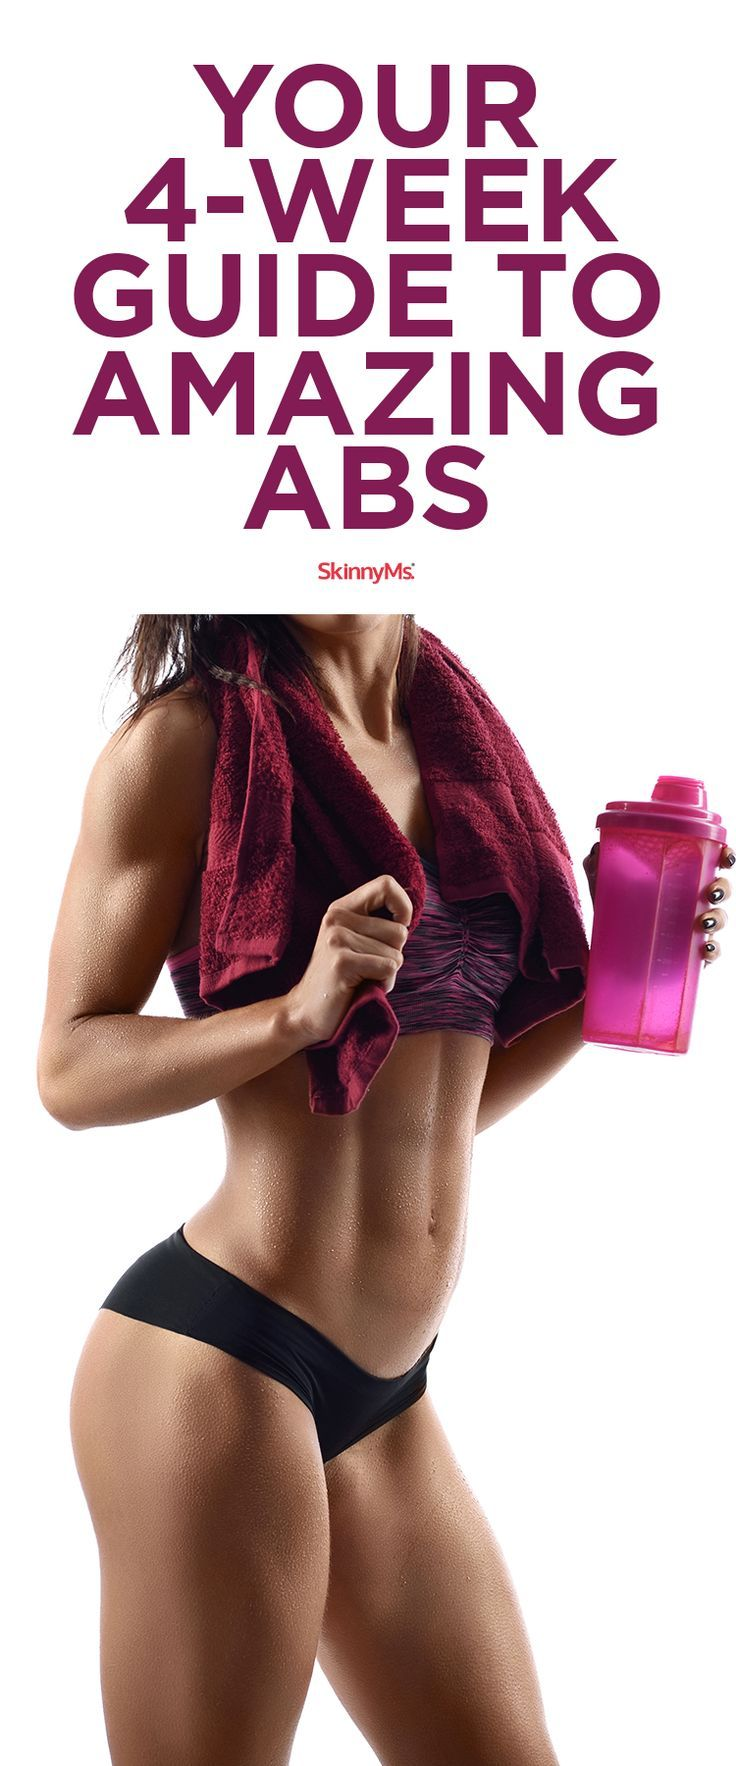 Download Your FREE 4-Week Guide to Amazing Abs today!